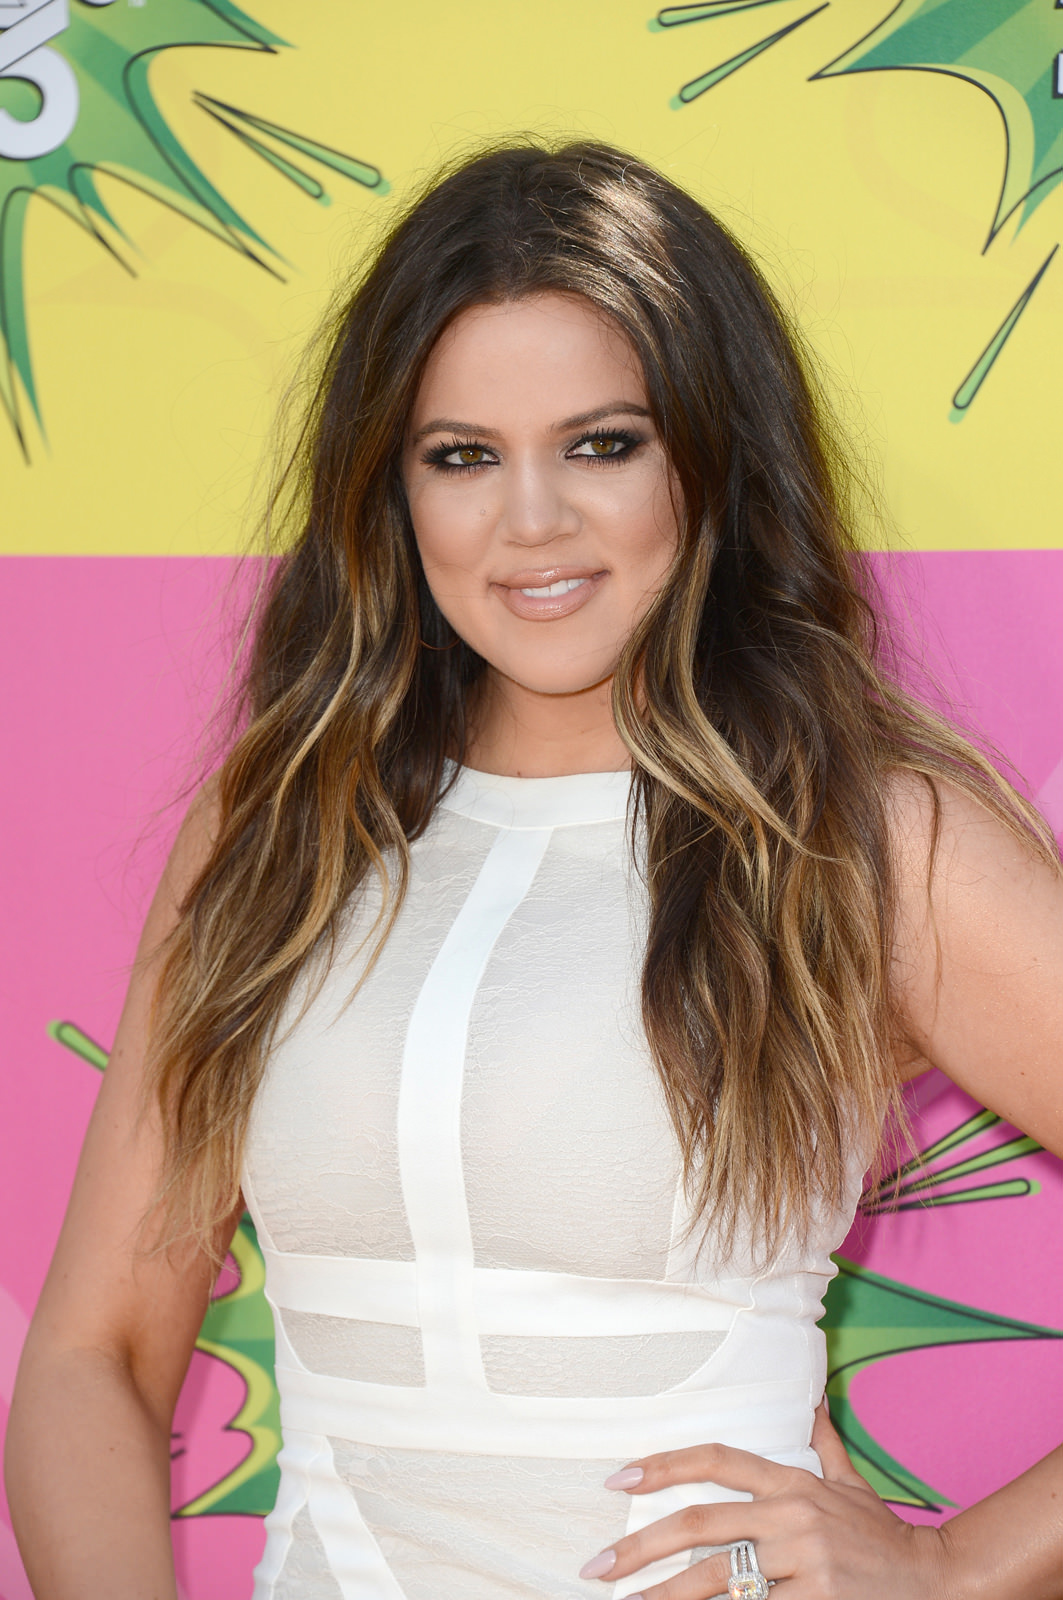 Khloe Kardashian Photo Gallery